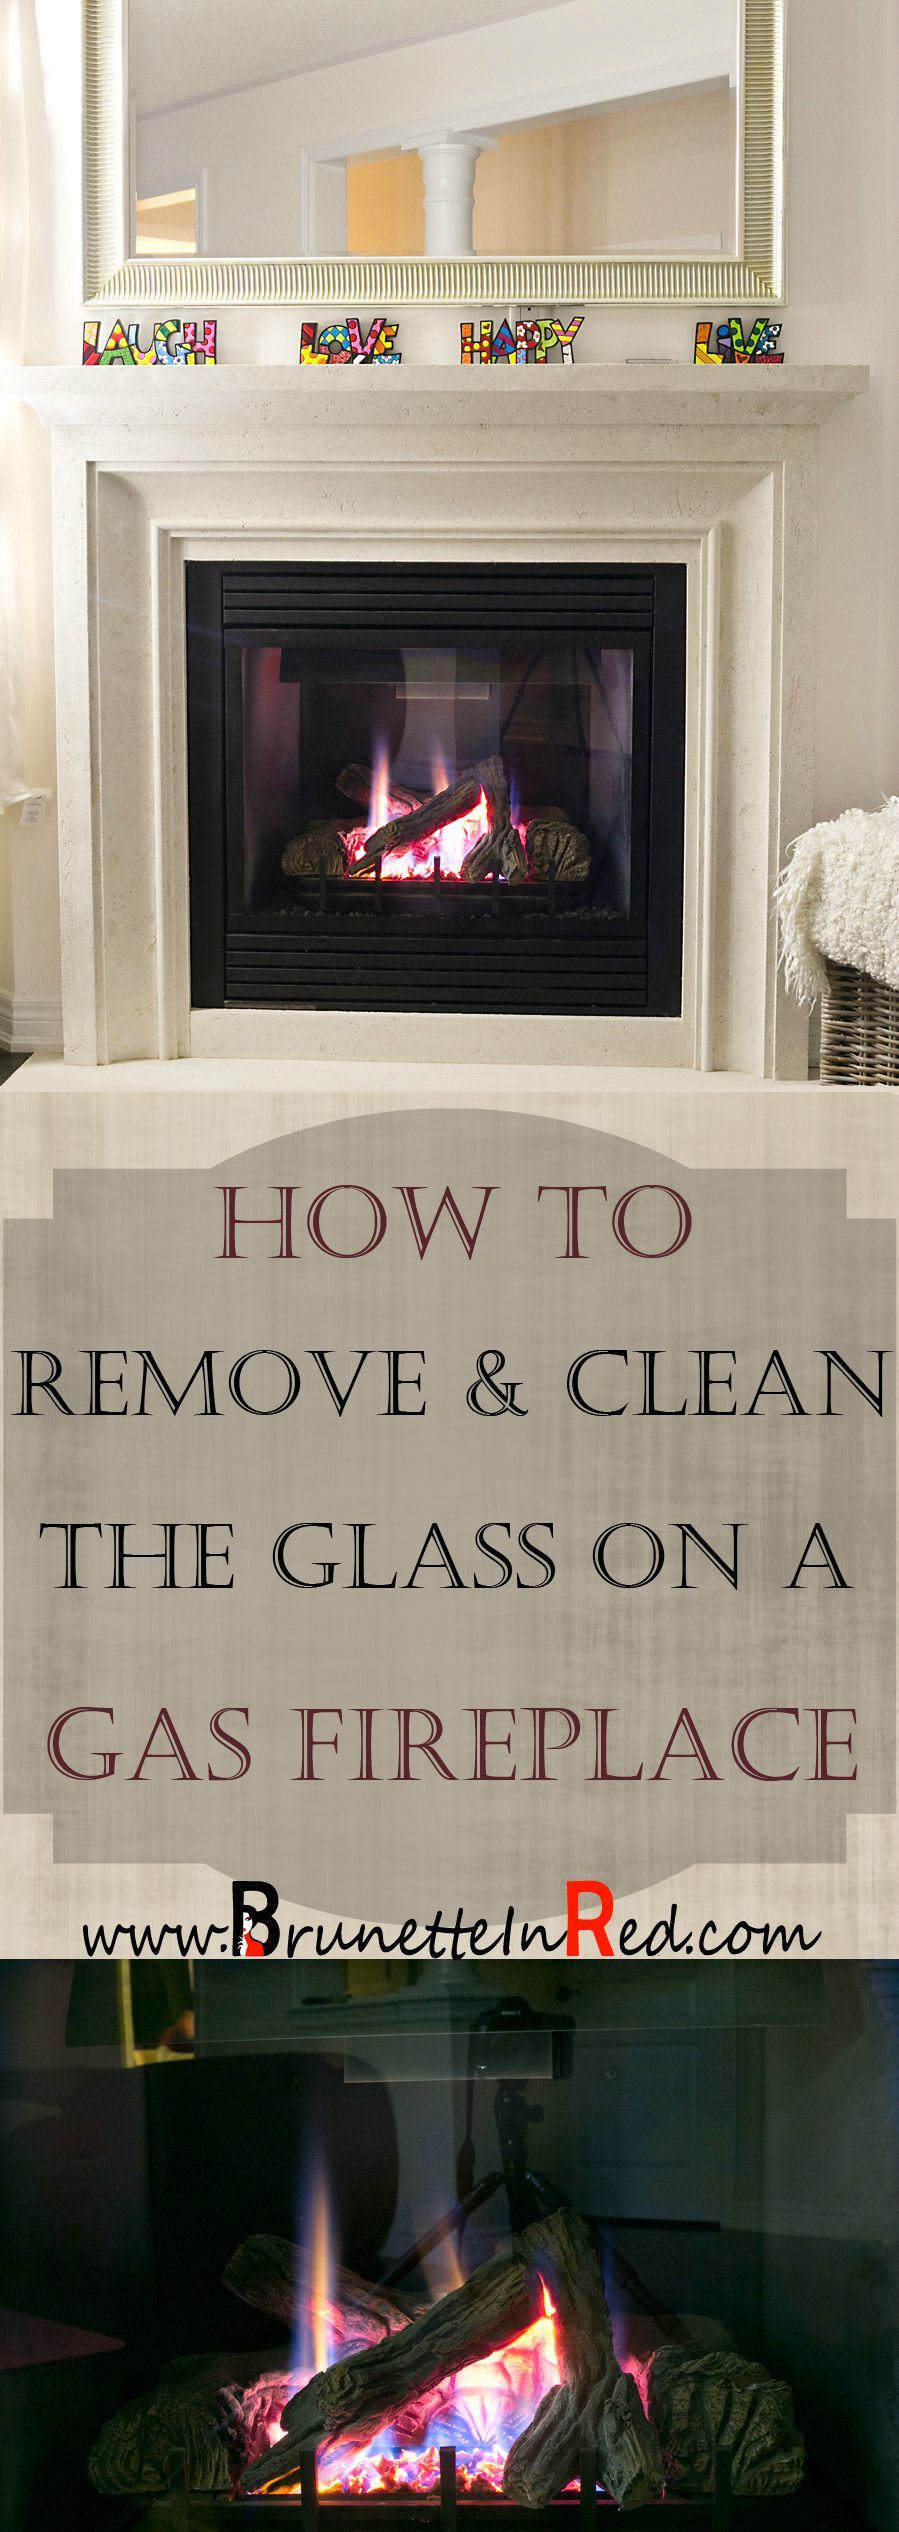 How To Install An H Burner And Fire Glass In Your Fireplace By